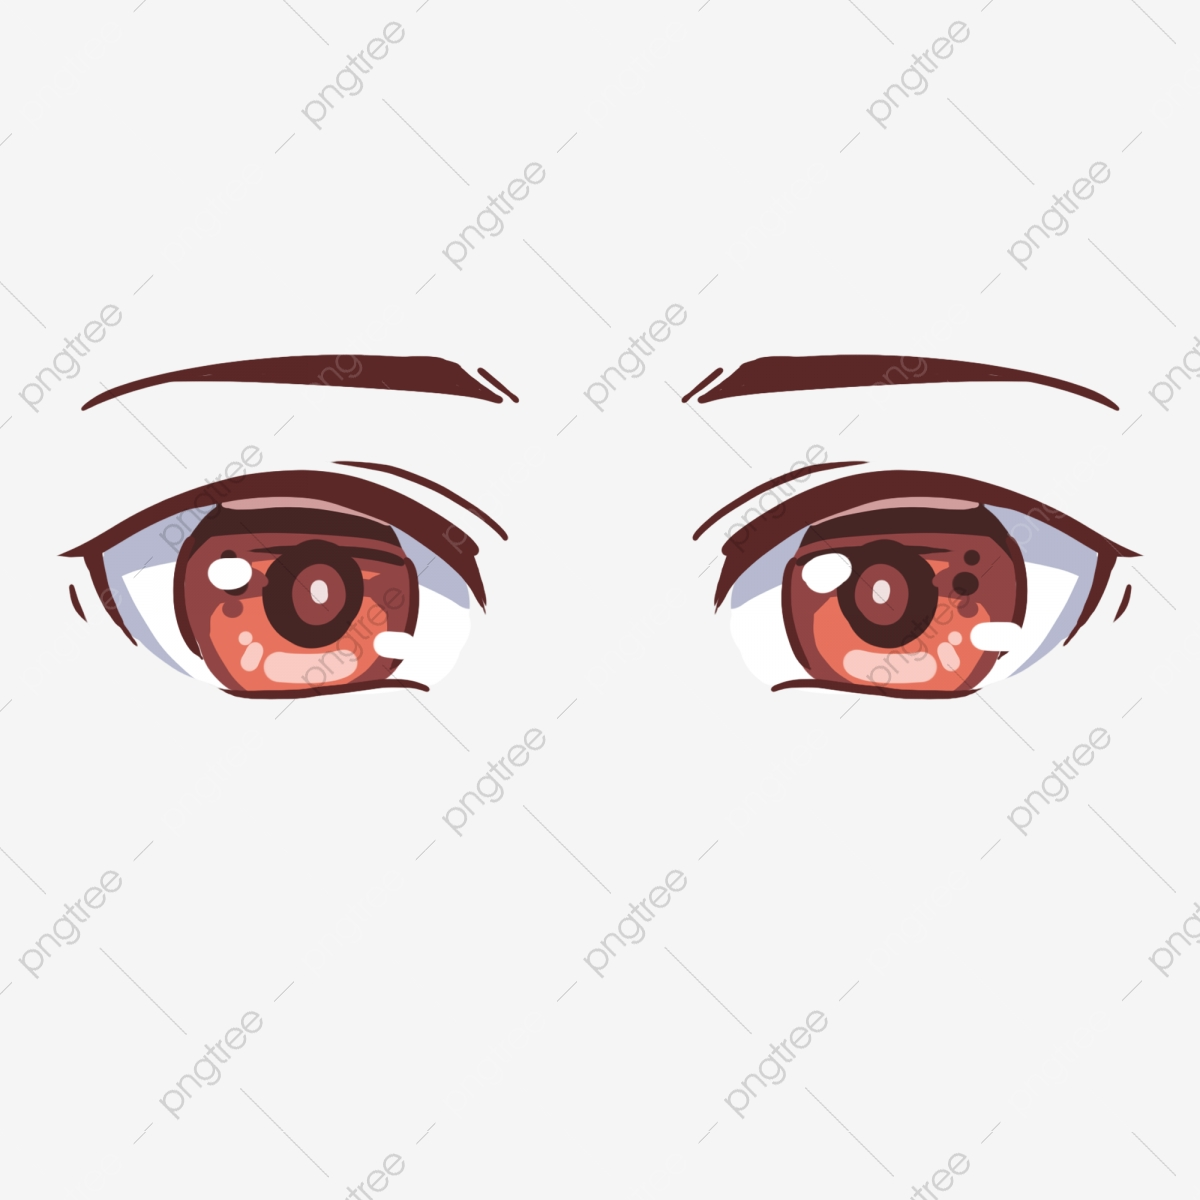 Comic Eyes Png Free Cartoon Eyes Cartoon Illustration Png